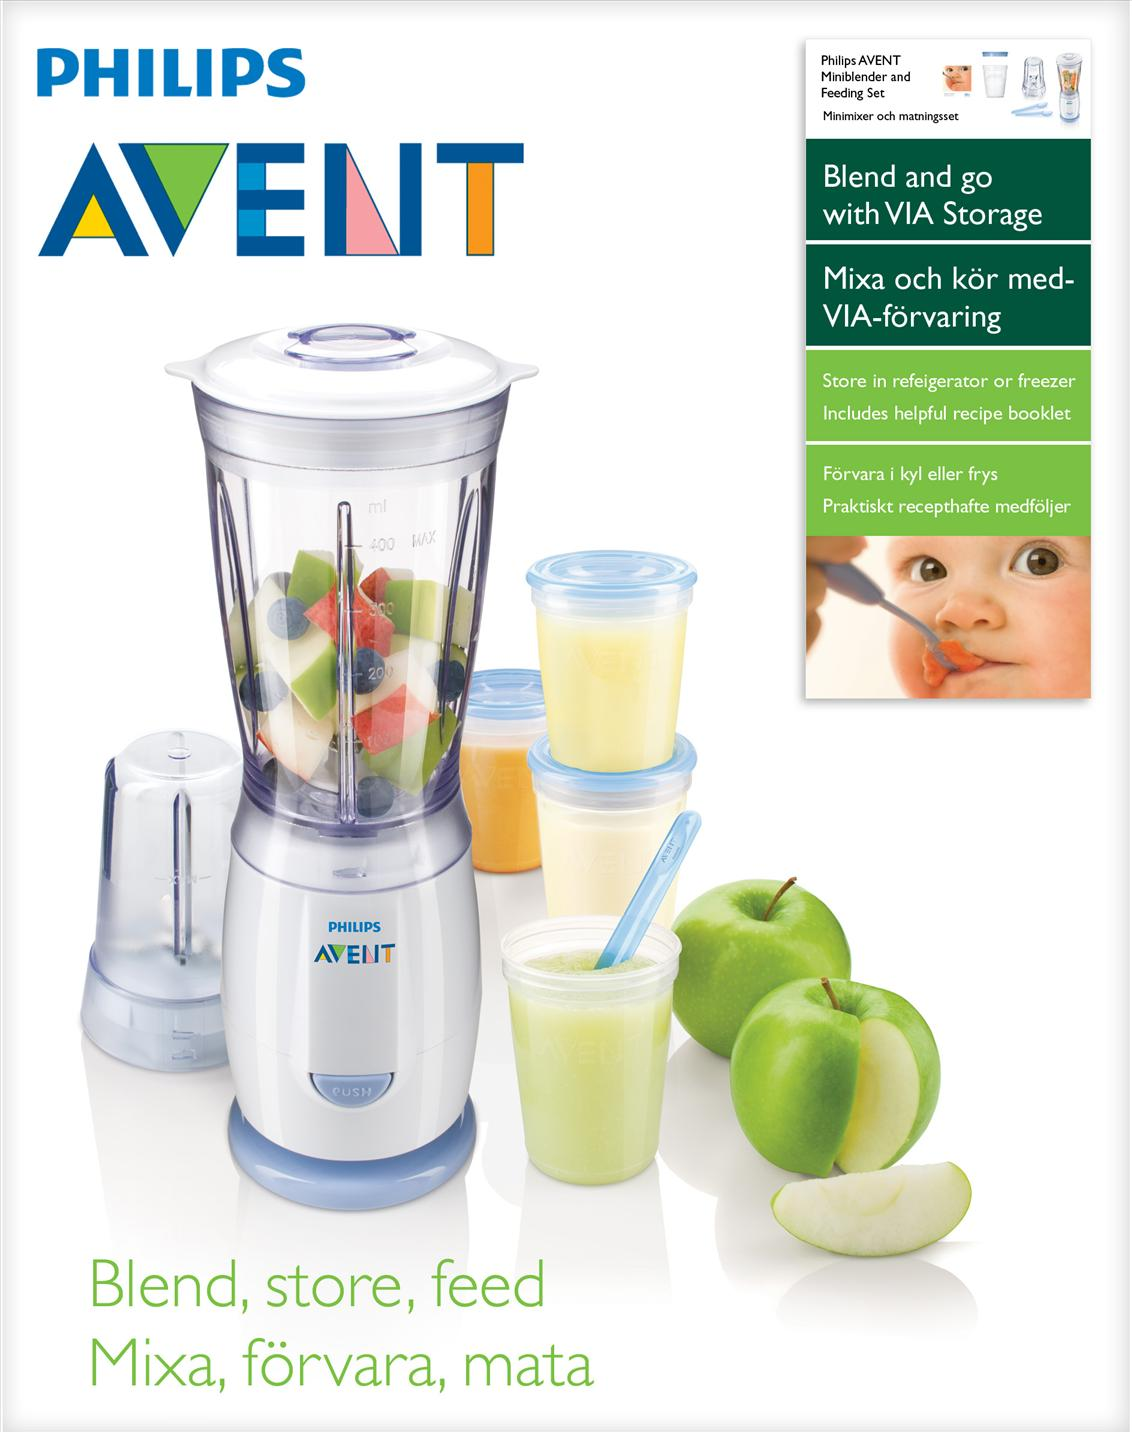 Ice blender machine argos uk braun food processor k750 keyboard avent food processor price philippines 8gbblender recipes margarita 2014top 10 food processor brands review pdf review forumfinder Images